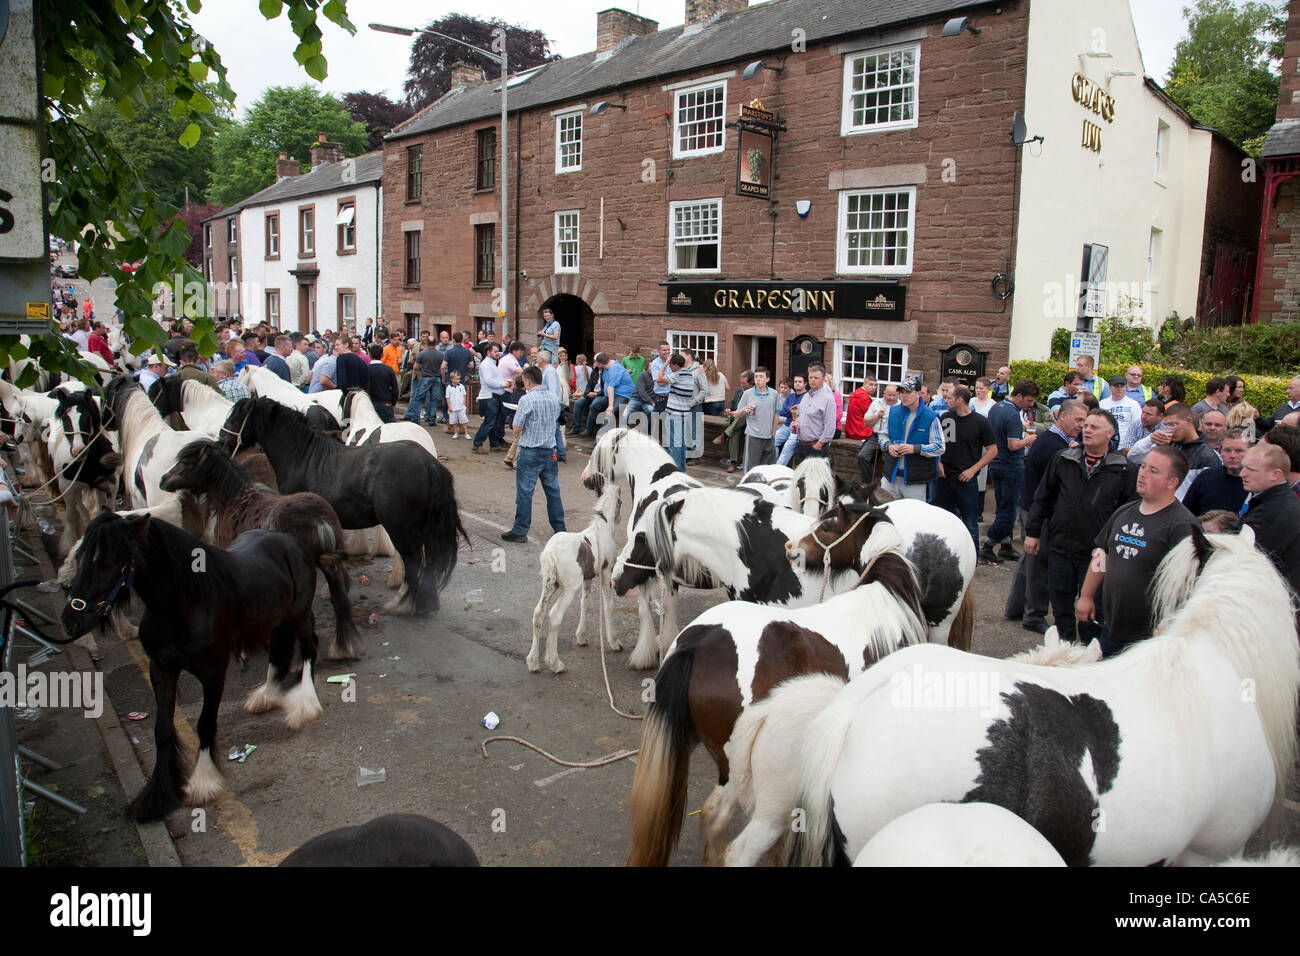 Sunday 10th June 2012 at Appleby, Cumbria, England, UK. Horse traders and visitors fill The Sands (street name) - Stock Image